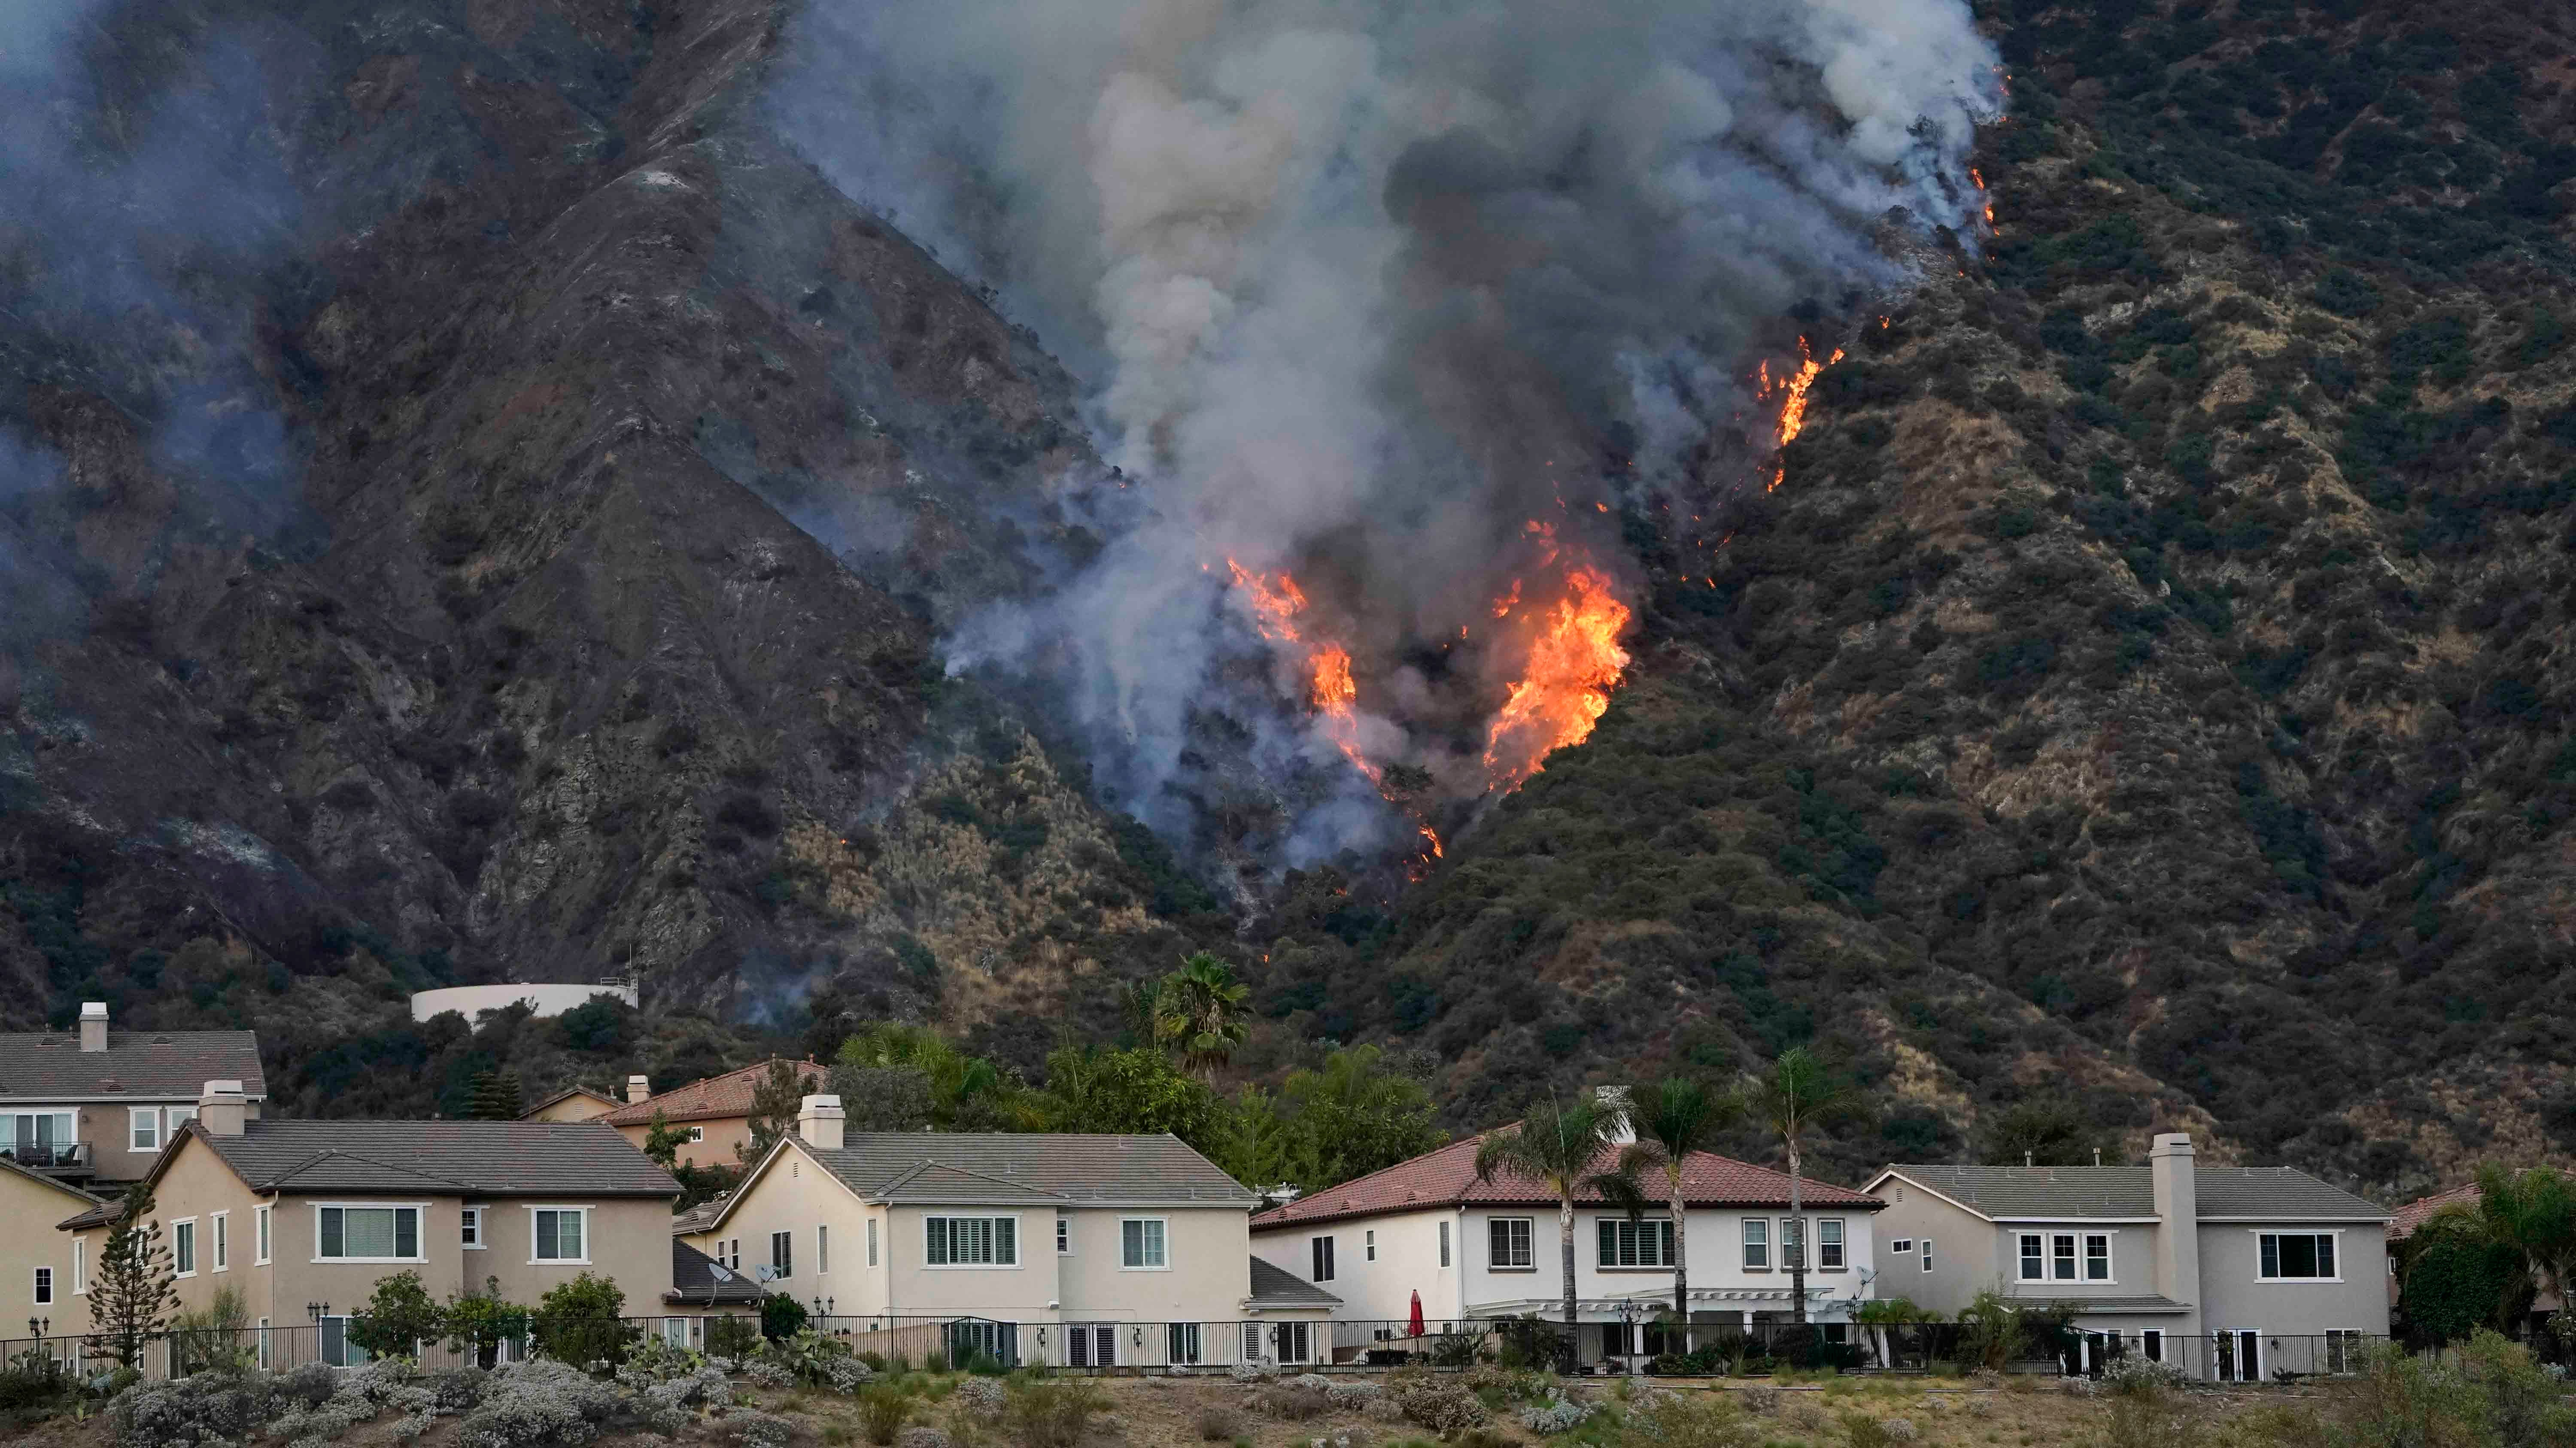 Second Wildfire Breaks Out Near Los Angeles as Temperatures Rise; Fires Also Prompt Evacuations in Oregon, Colorado | The Weather Channel - Articles from The Weather Channel | weather.com